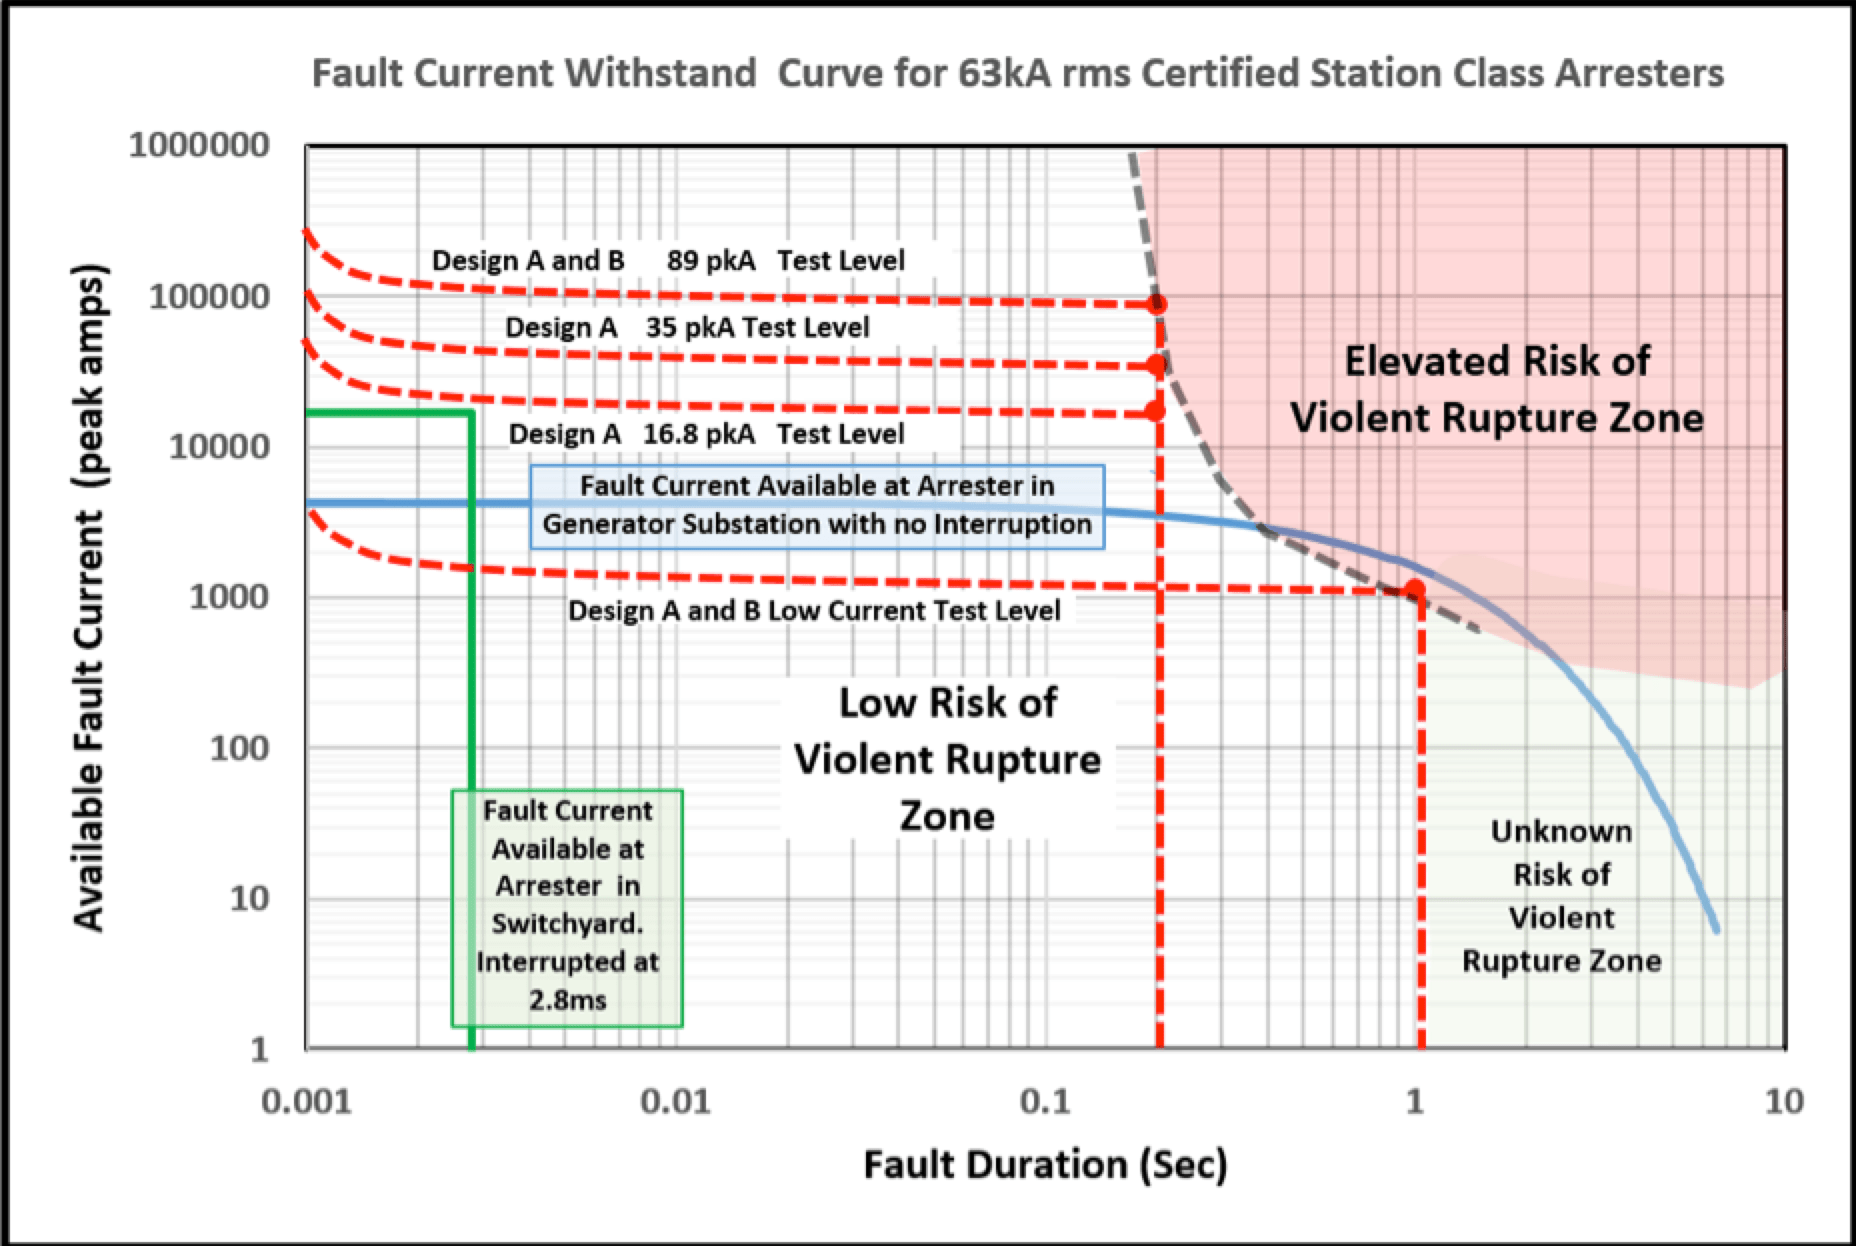 Station Class Arrester station class arrester Fault Current Withstand Capability of Station Class Arresters Fault current withstand curve